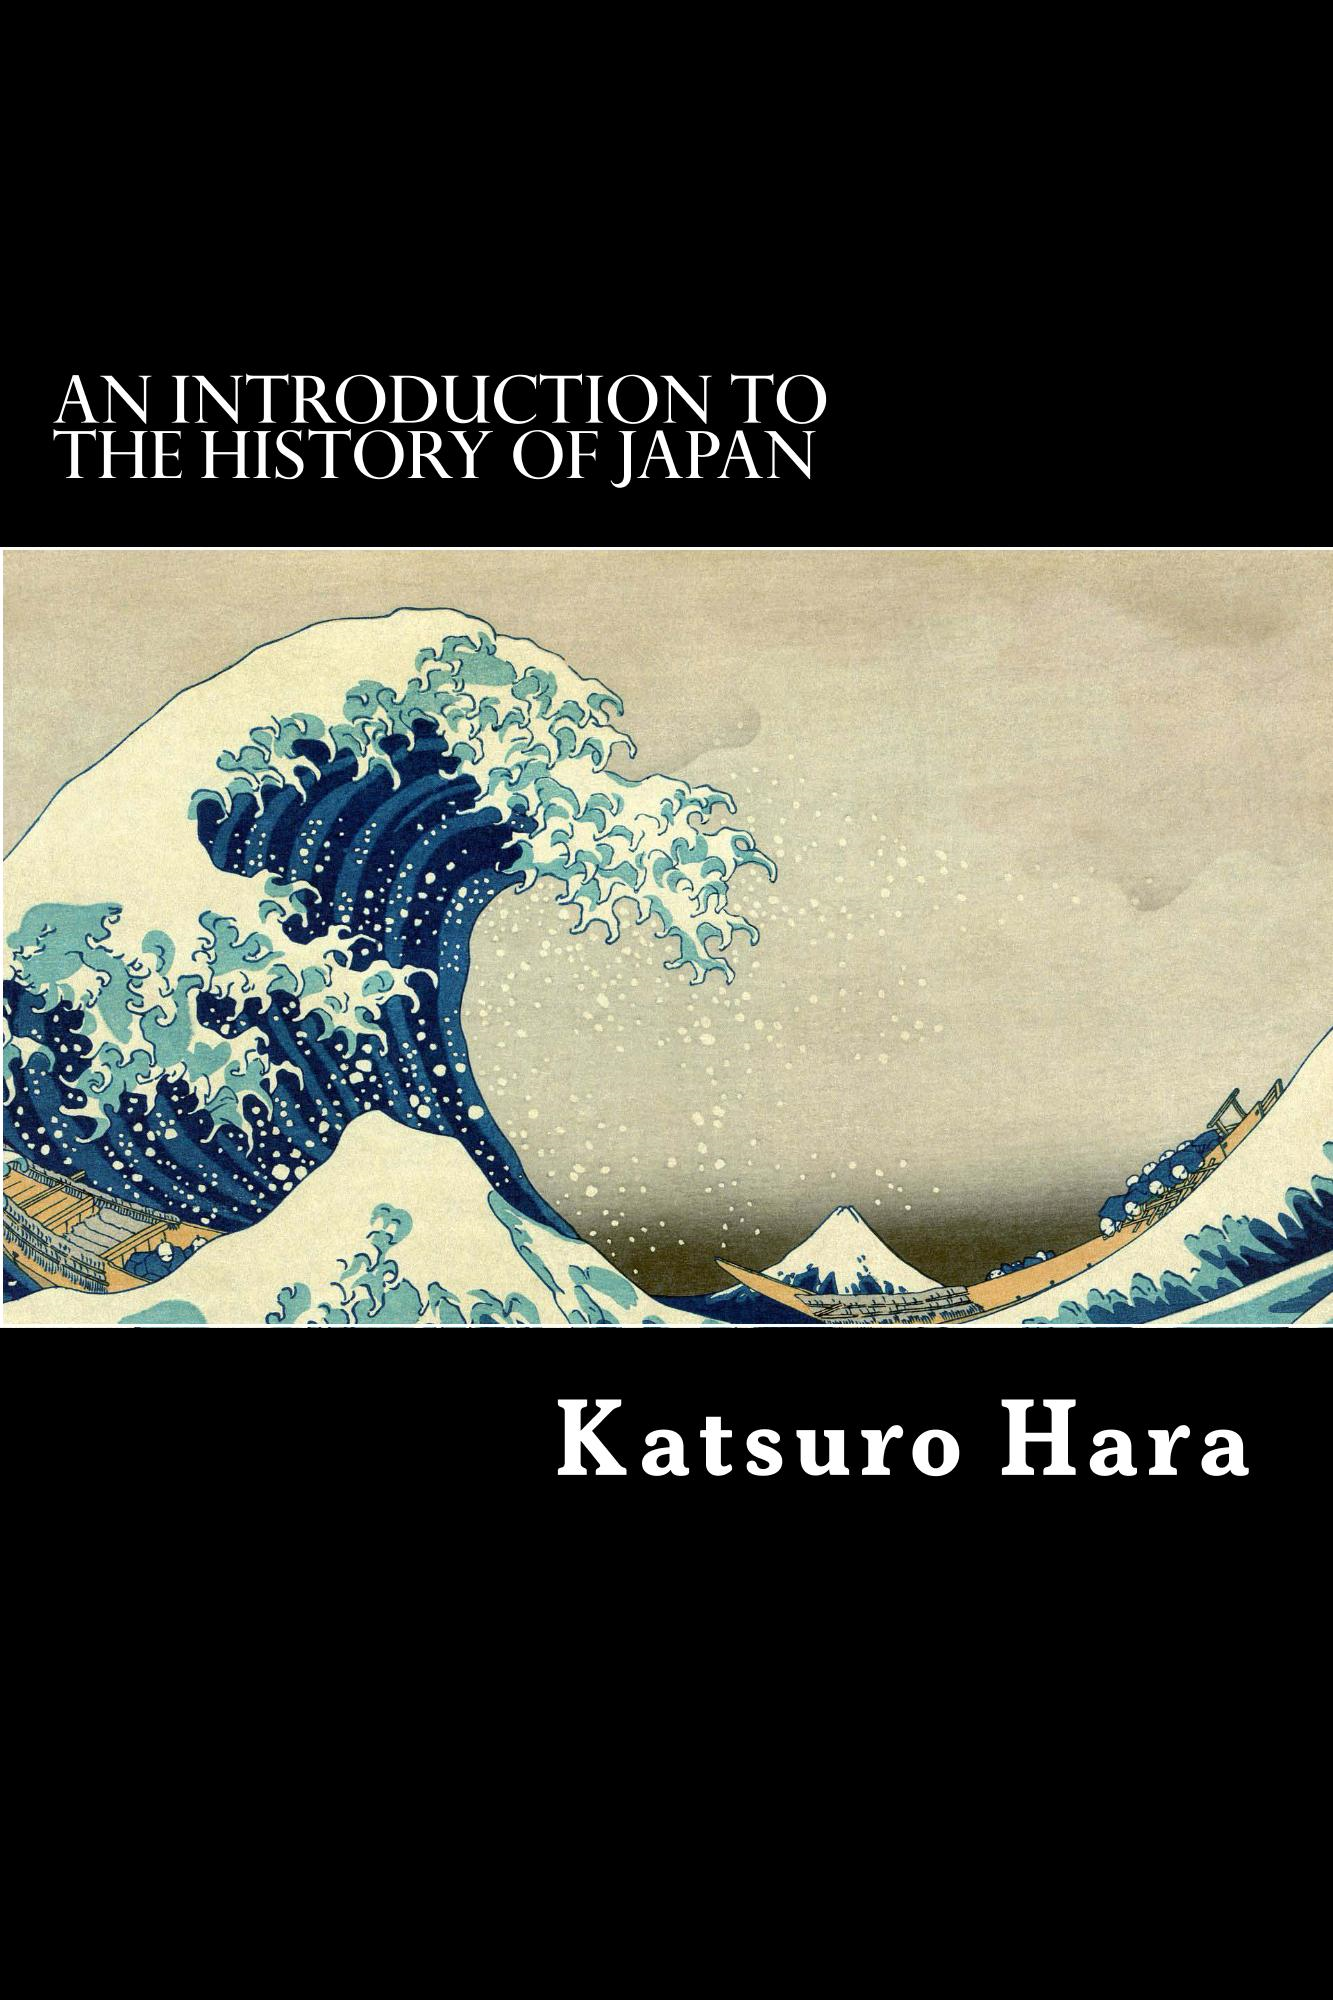 Katsuro Hara - An Introduction to the History of Japan